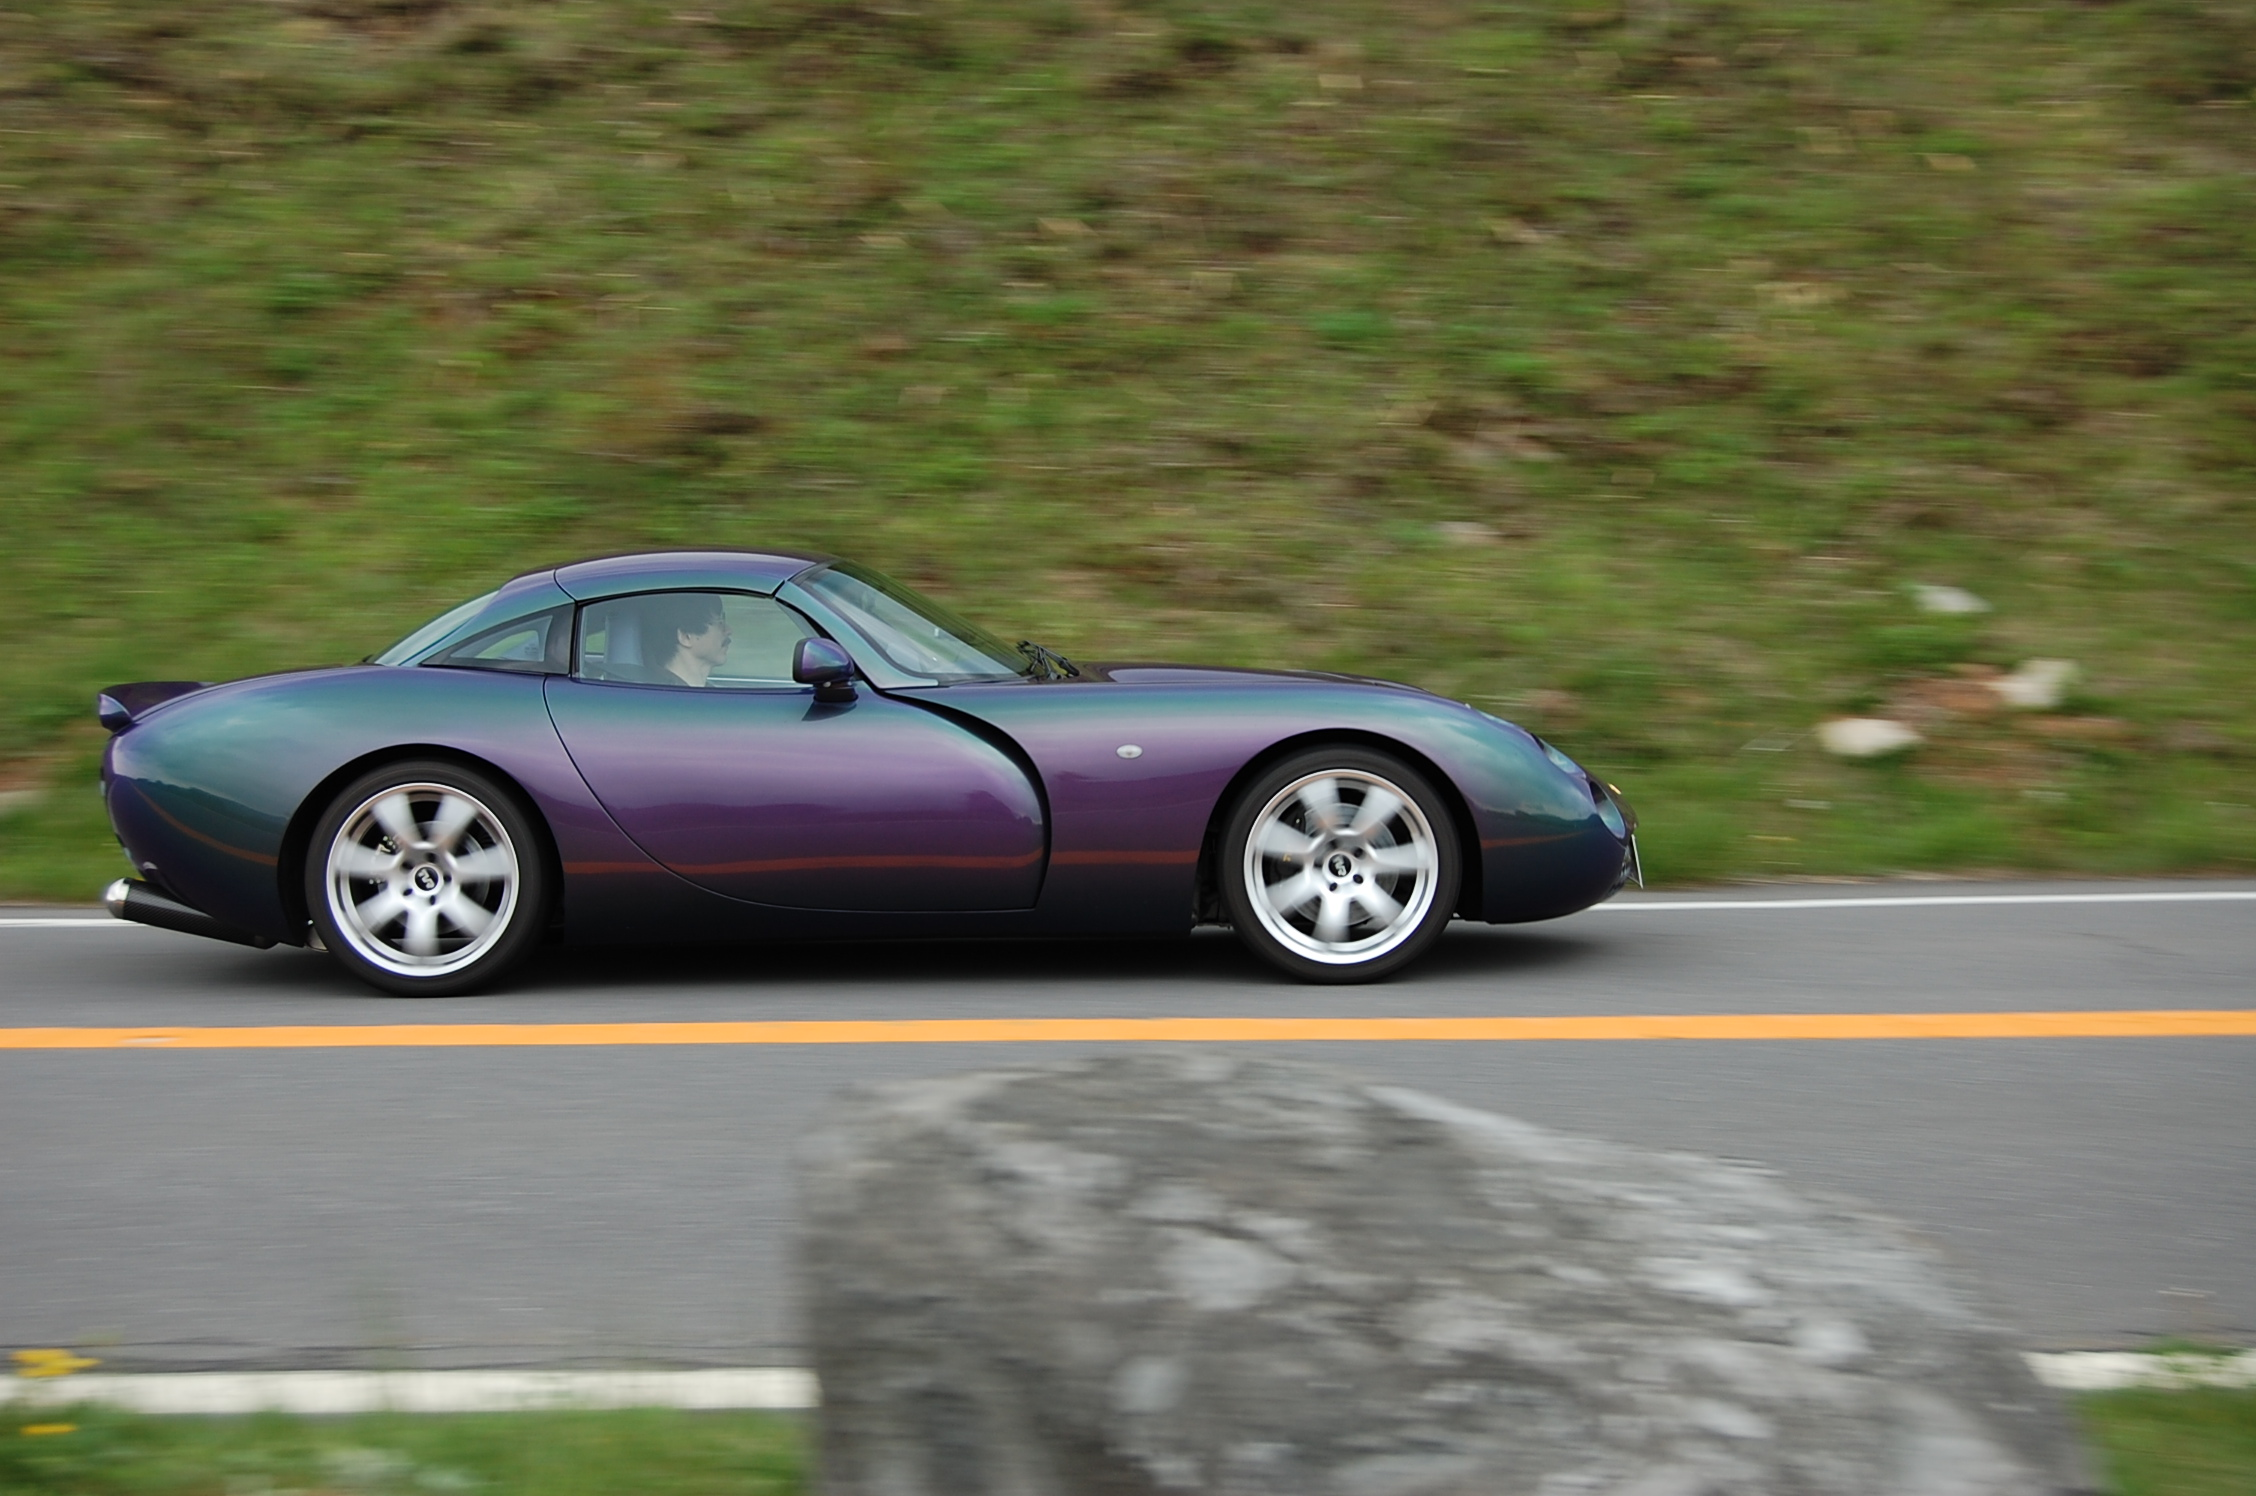 Tuscan S in TVR Day 2007